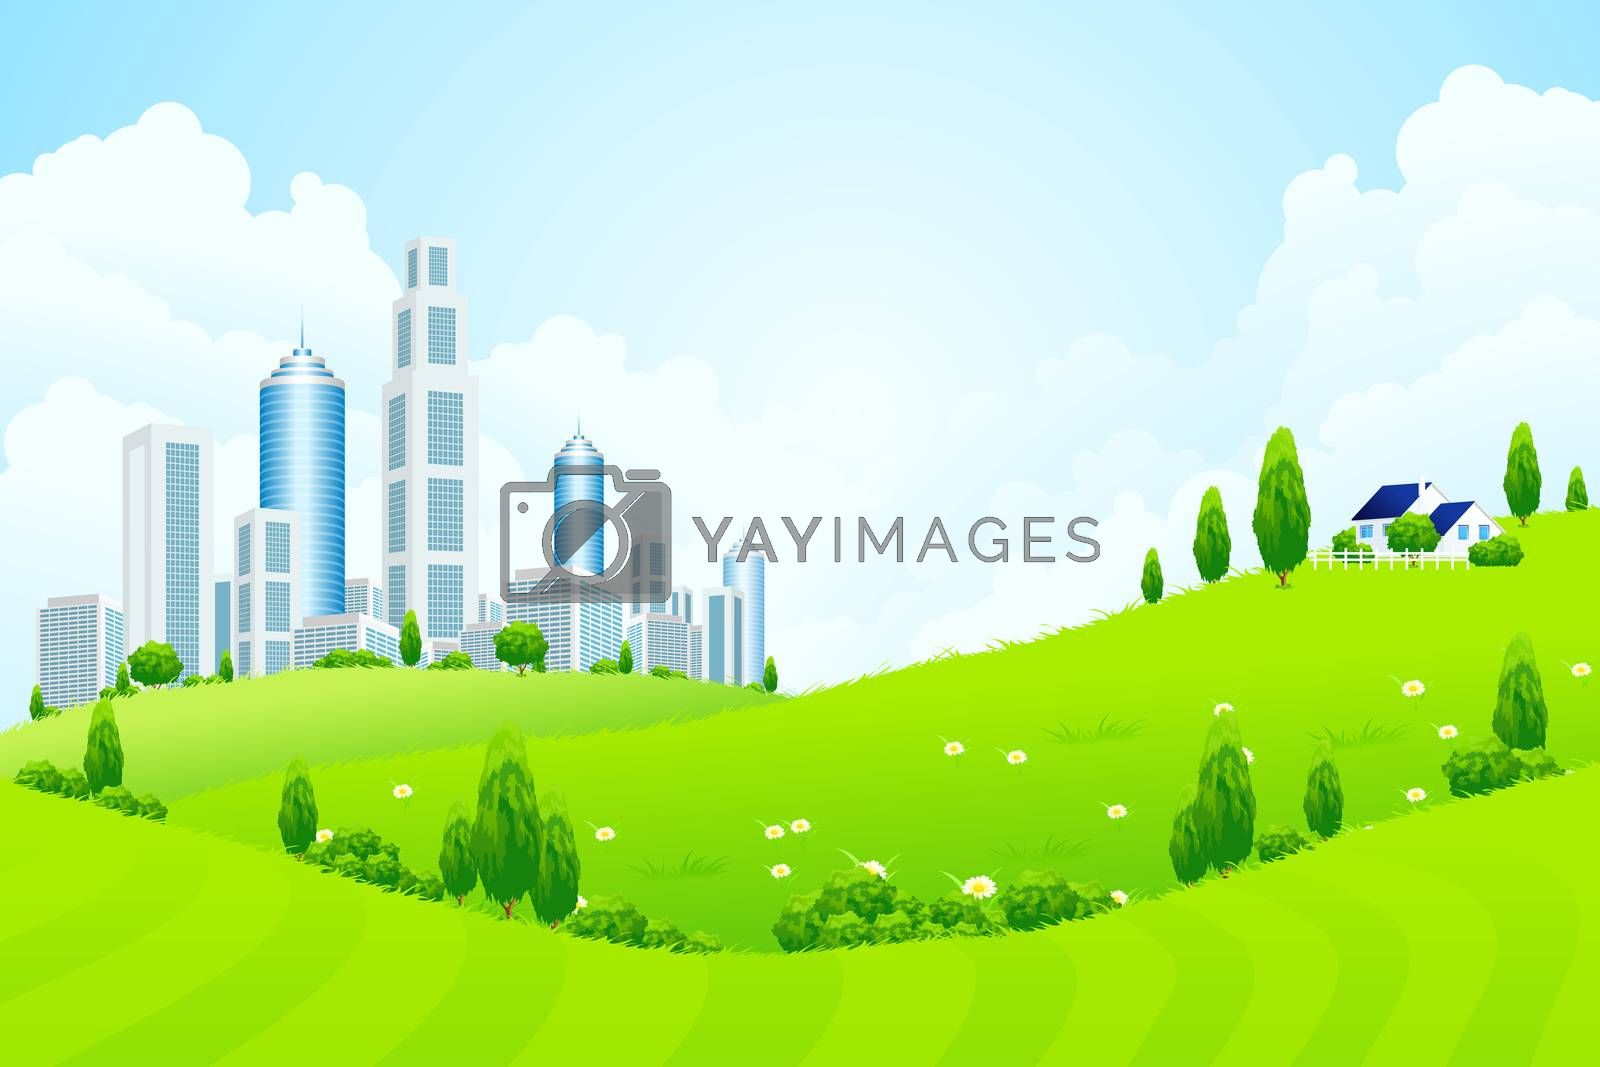 Green Landscape with City and Clouds by WaD